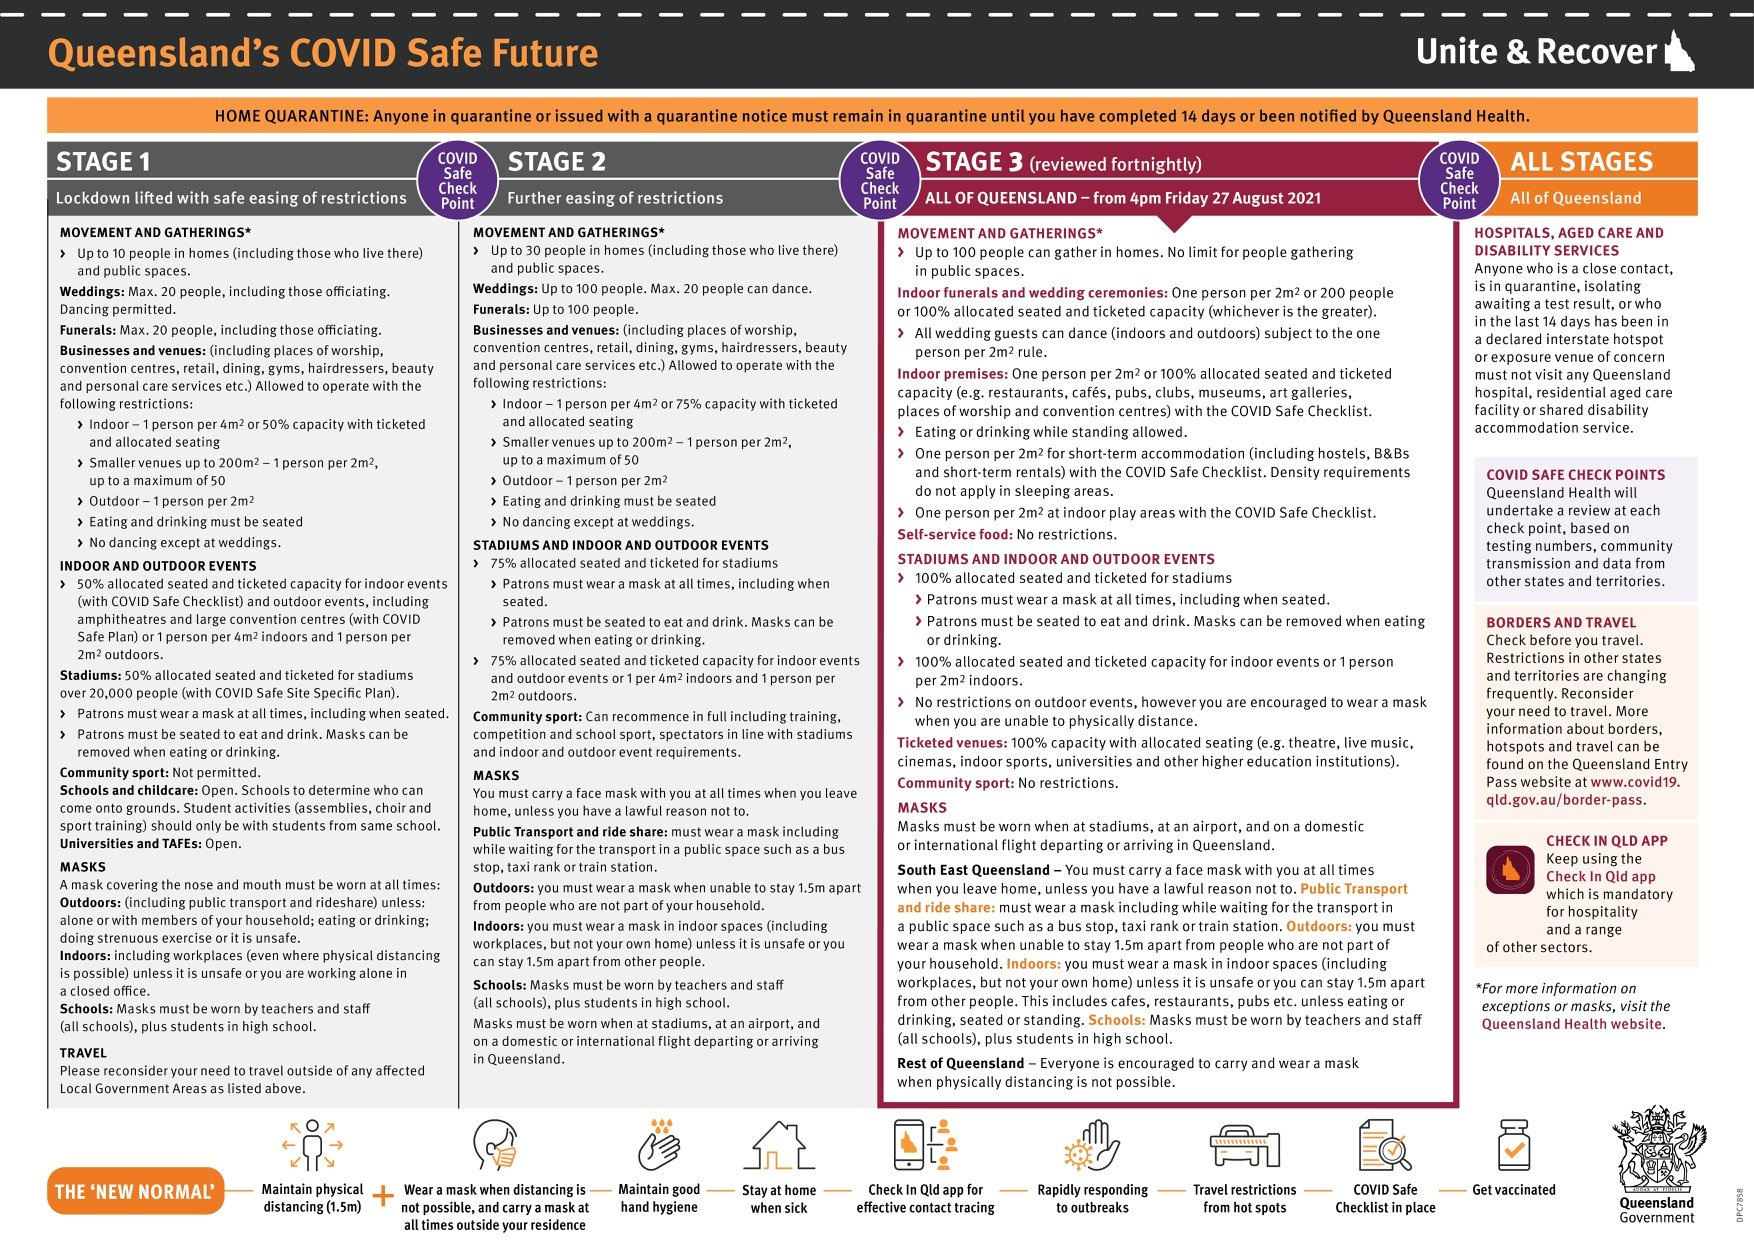 COVID Roadmap from 27 August 2021